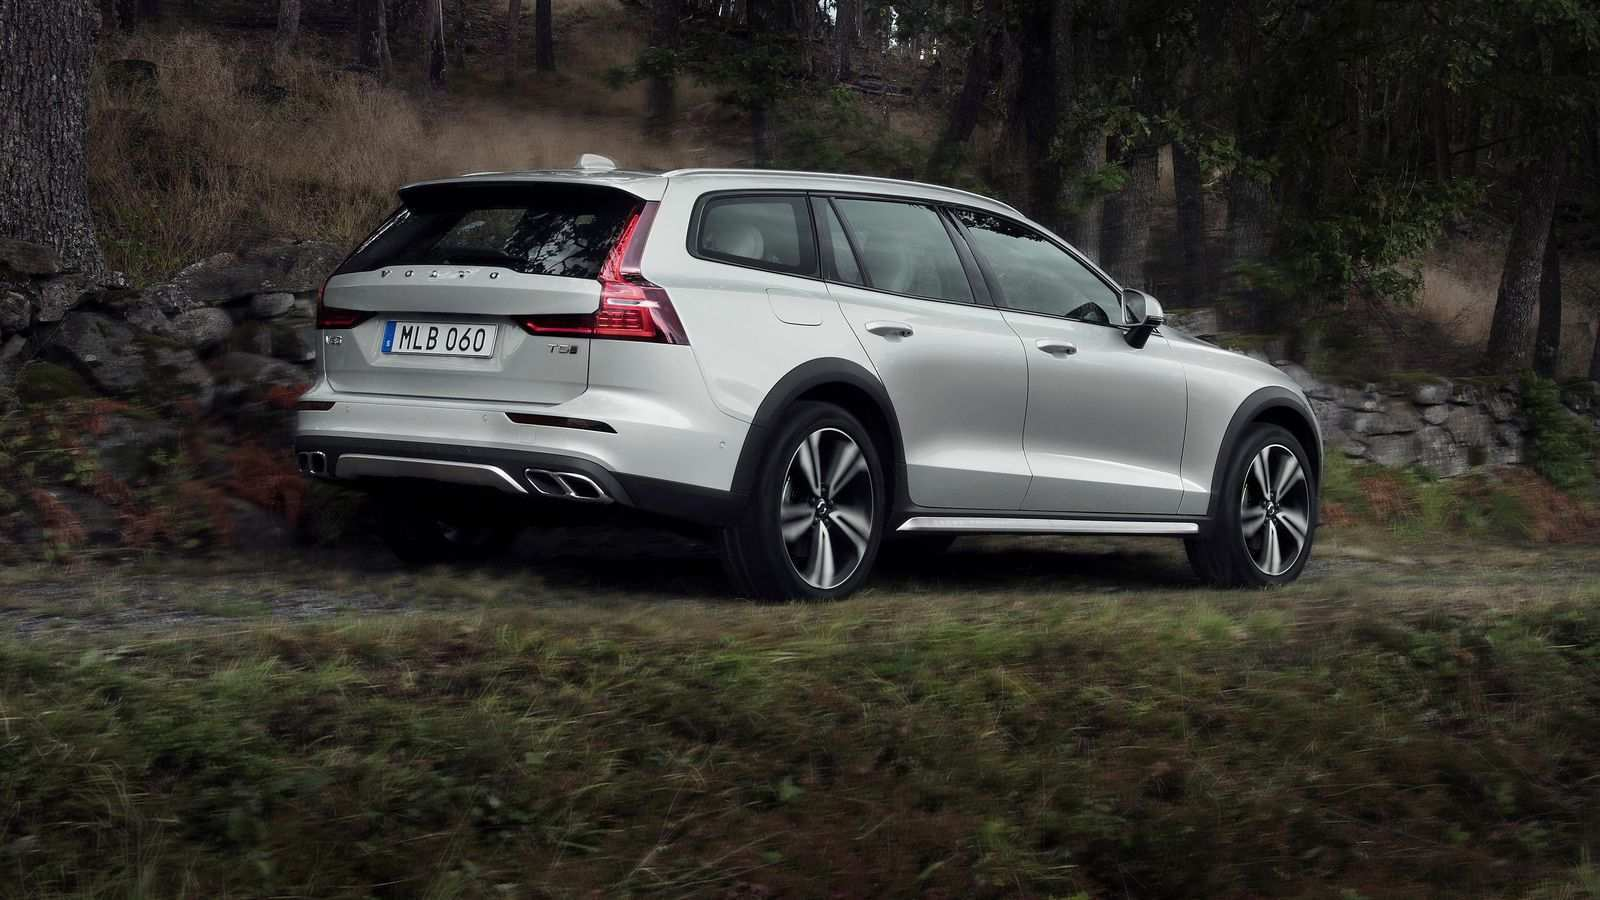 64 All New Volvo S60 2020 News Picture by Volvo S60 2020 News